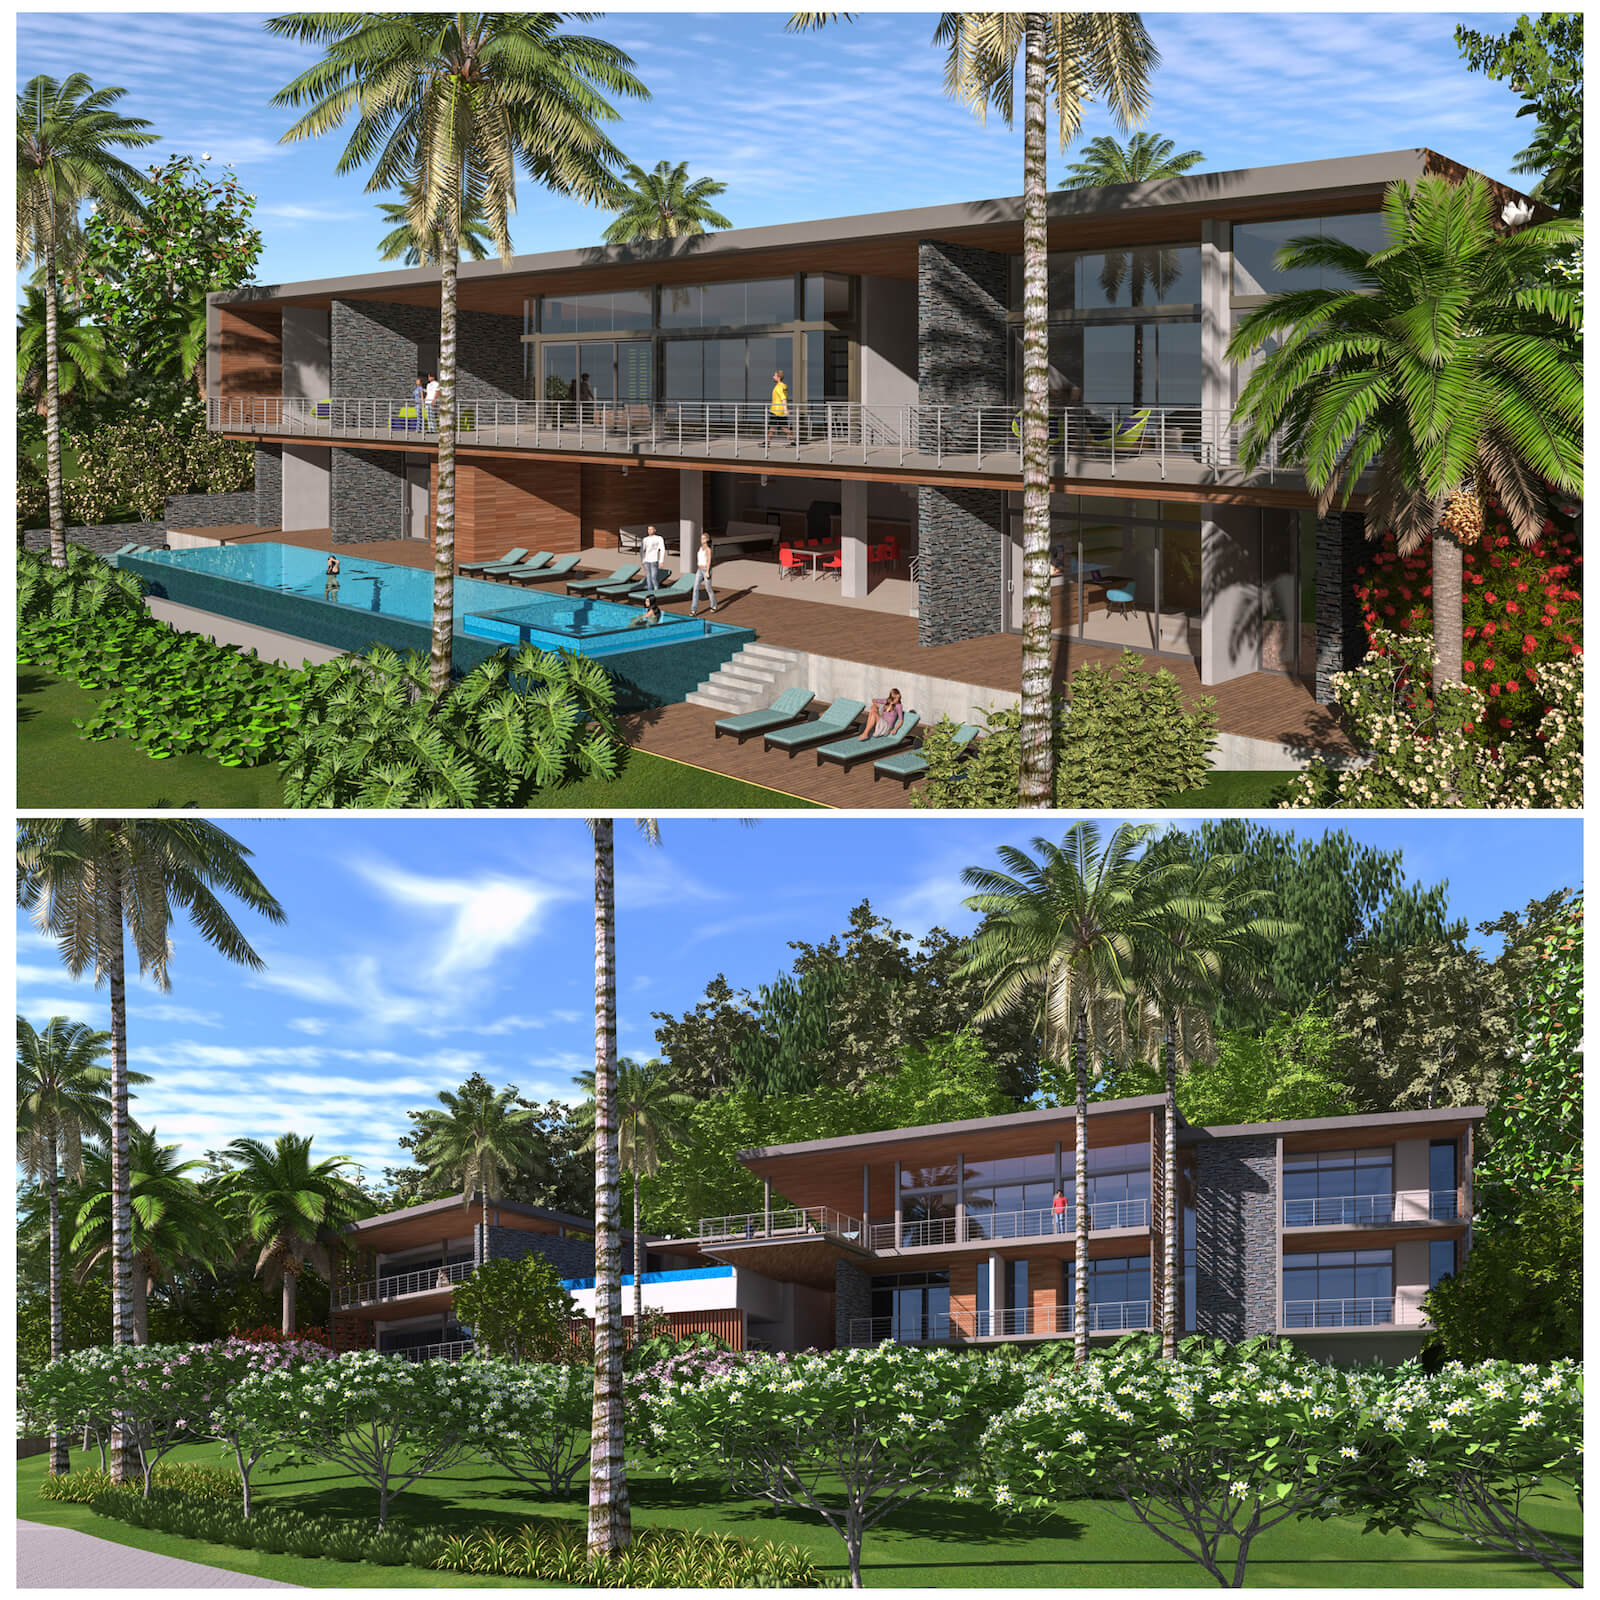 Cap Limón Luxury Club Residences Resort By SARCO Architects